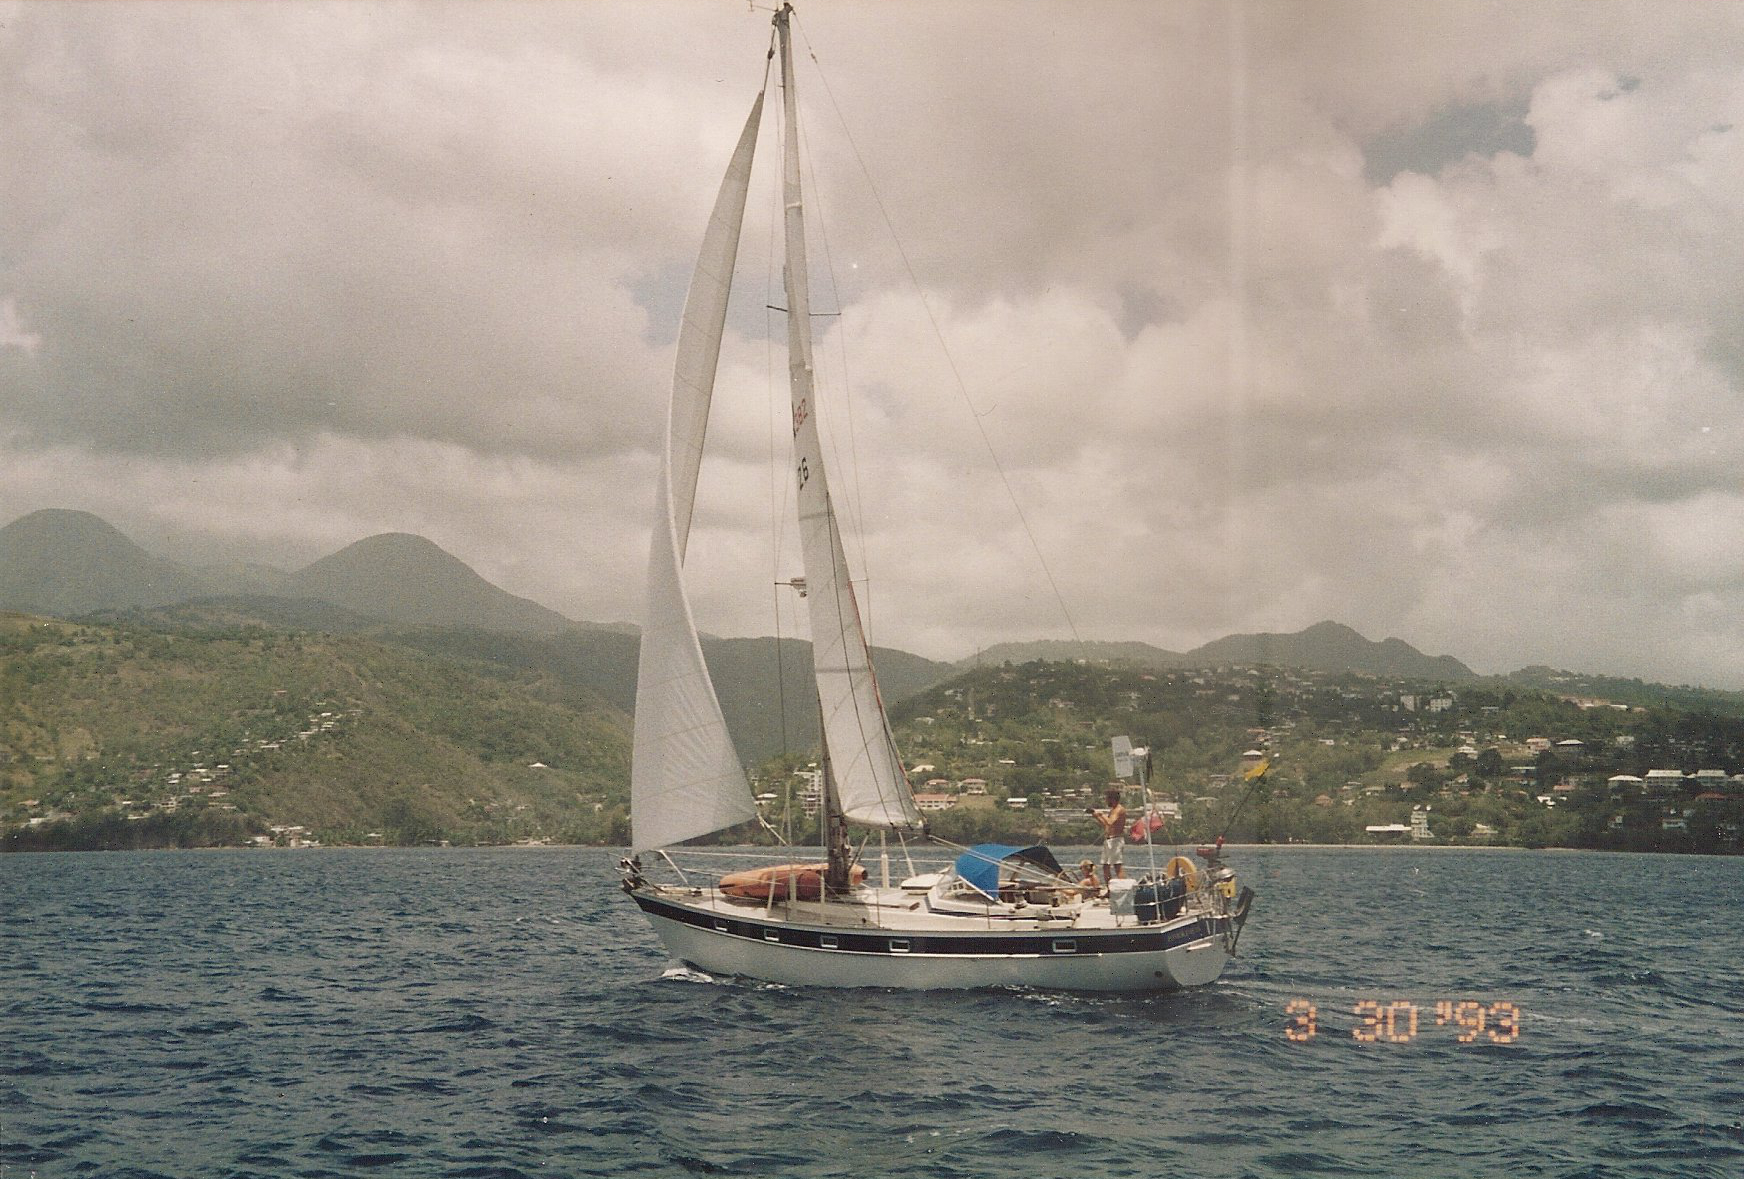 Sailing off Martinique in the Caribbean